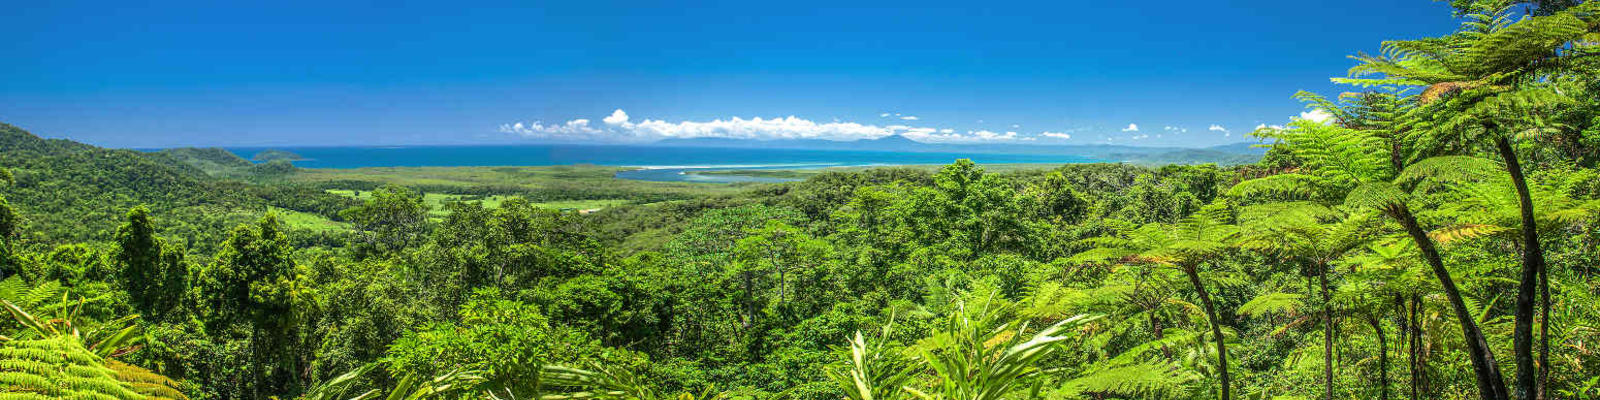 A view of the Great Barrier Reef over the treetops of the Daintree Rainforest in Tropical North Queensland.